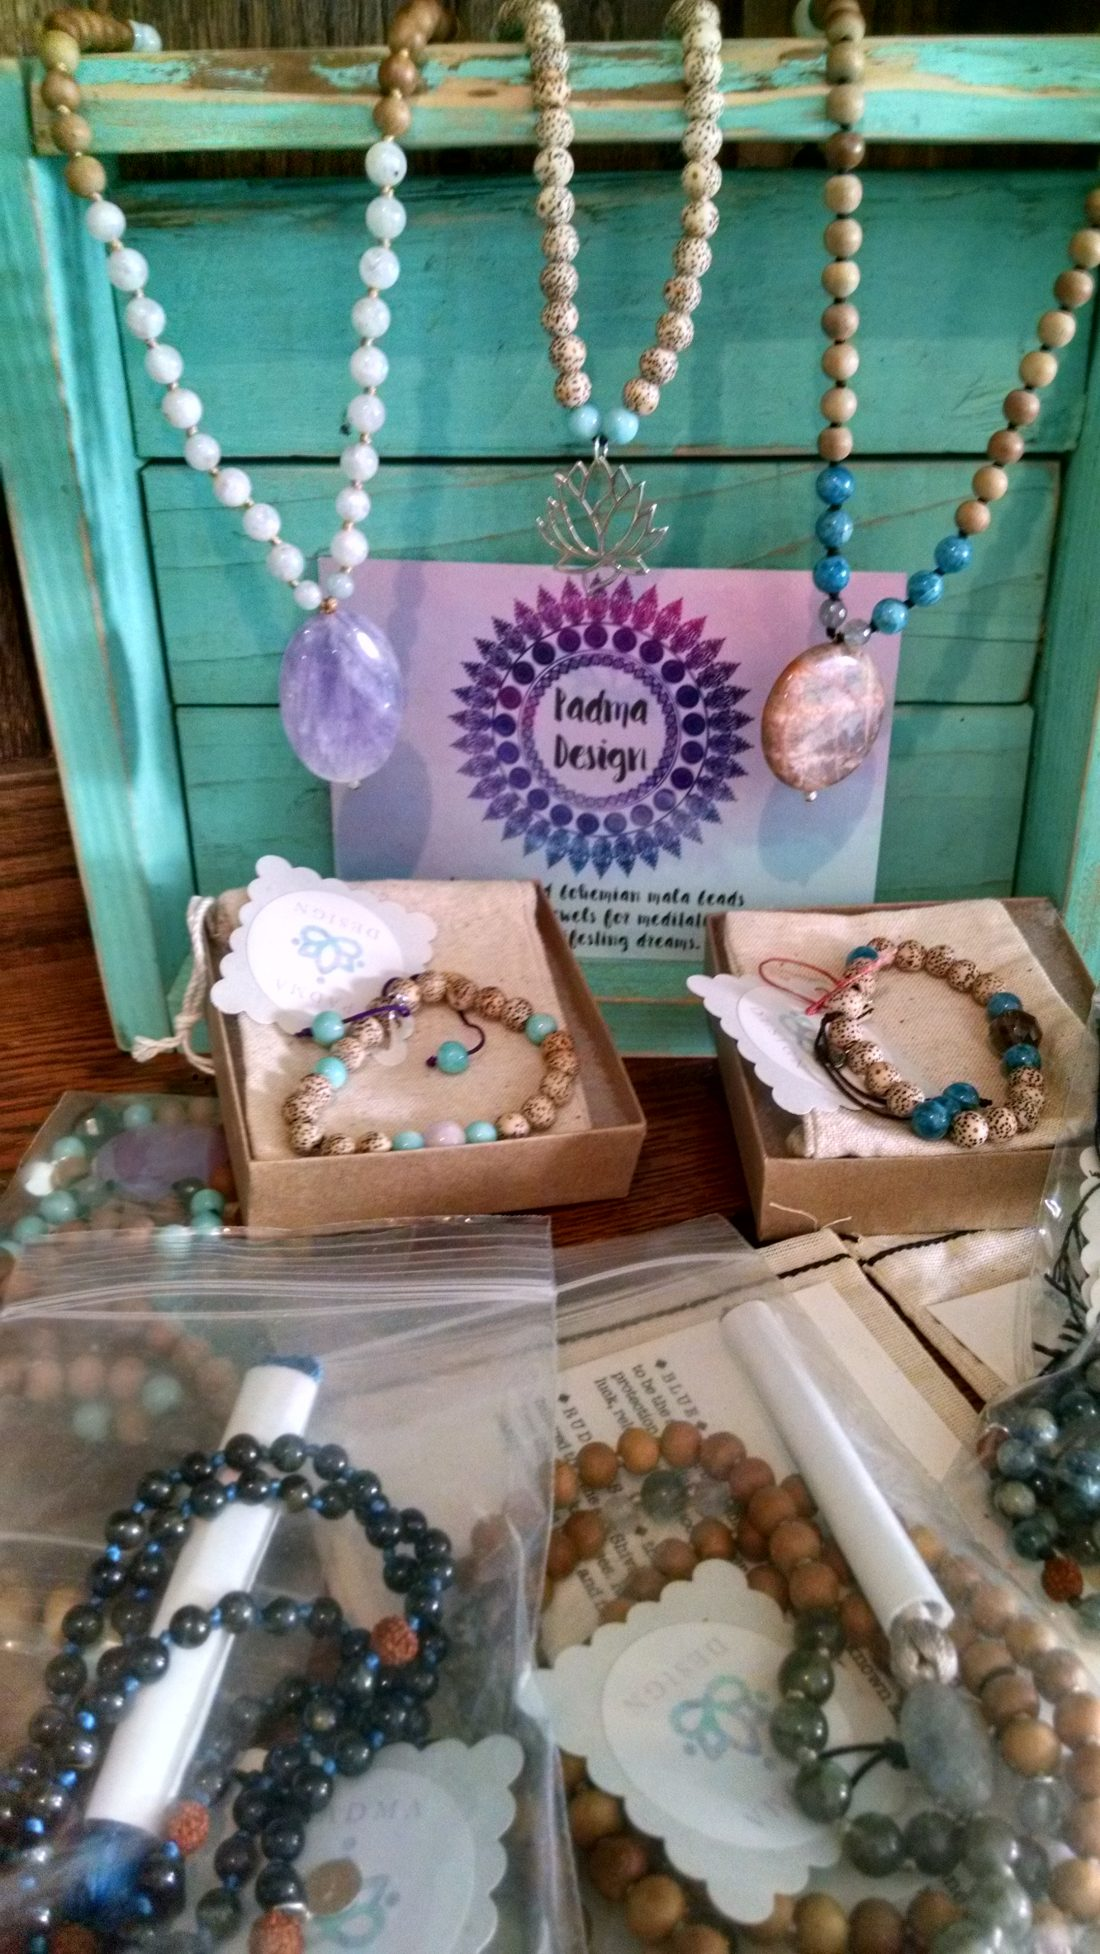 Mala Beads by Padma Design sold in our gift shop at Paradise Produce Market in San Diego.